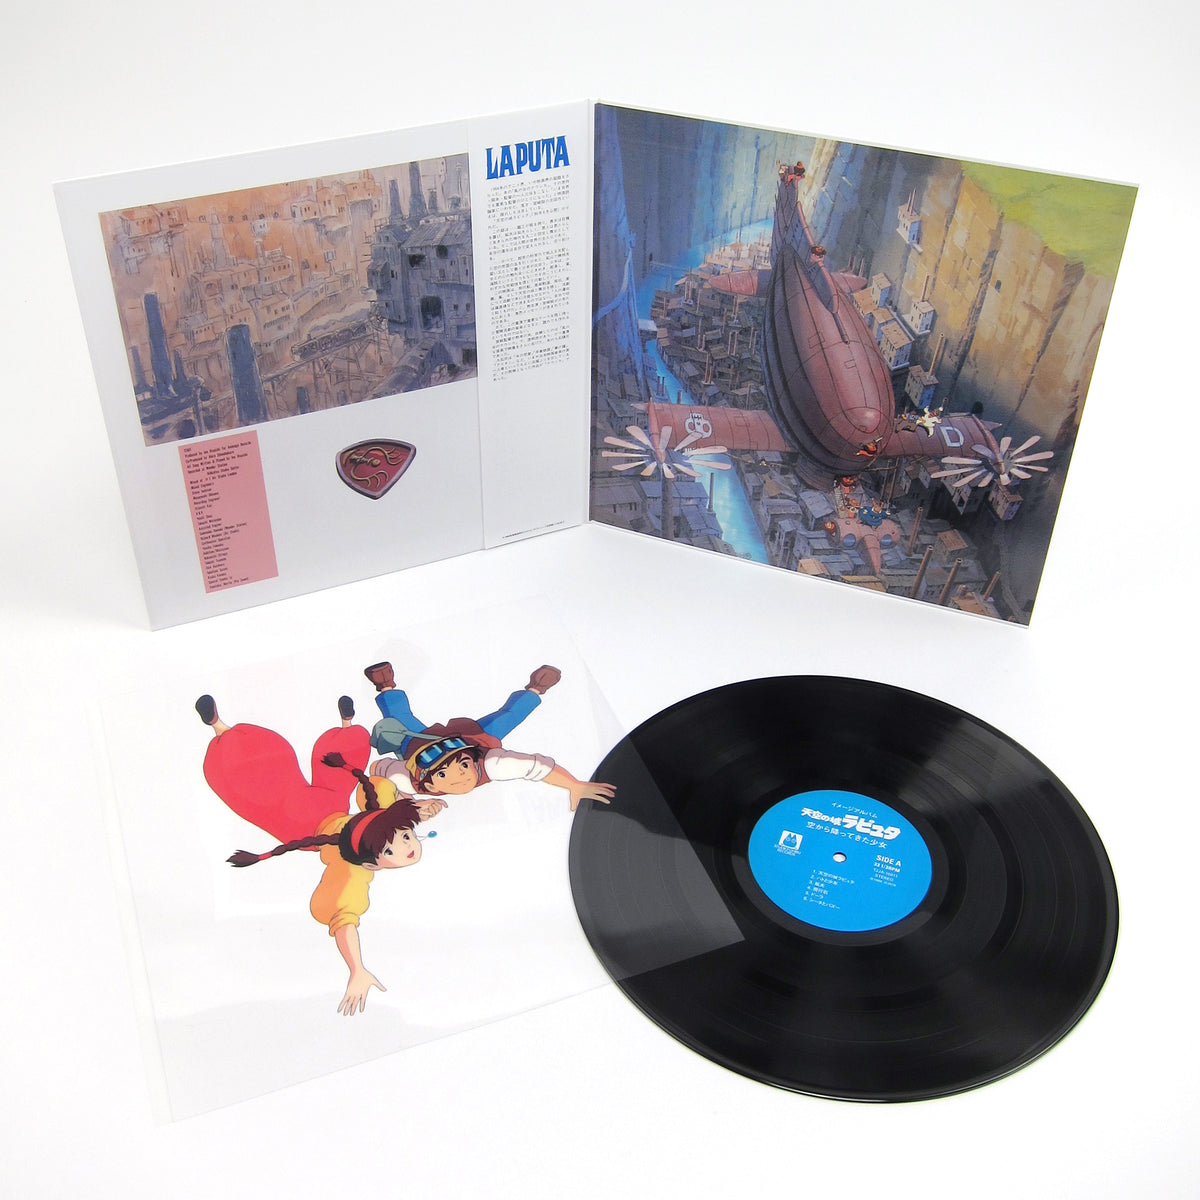 Joe Hisaishi: Castle In The Sky - Image Album Vinyl LP